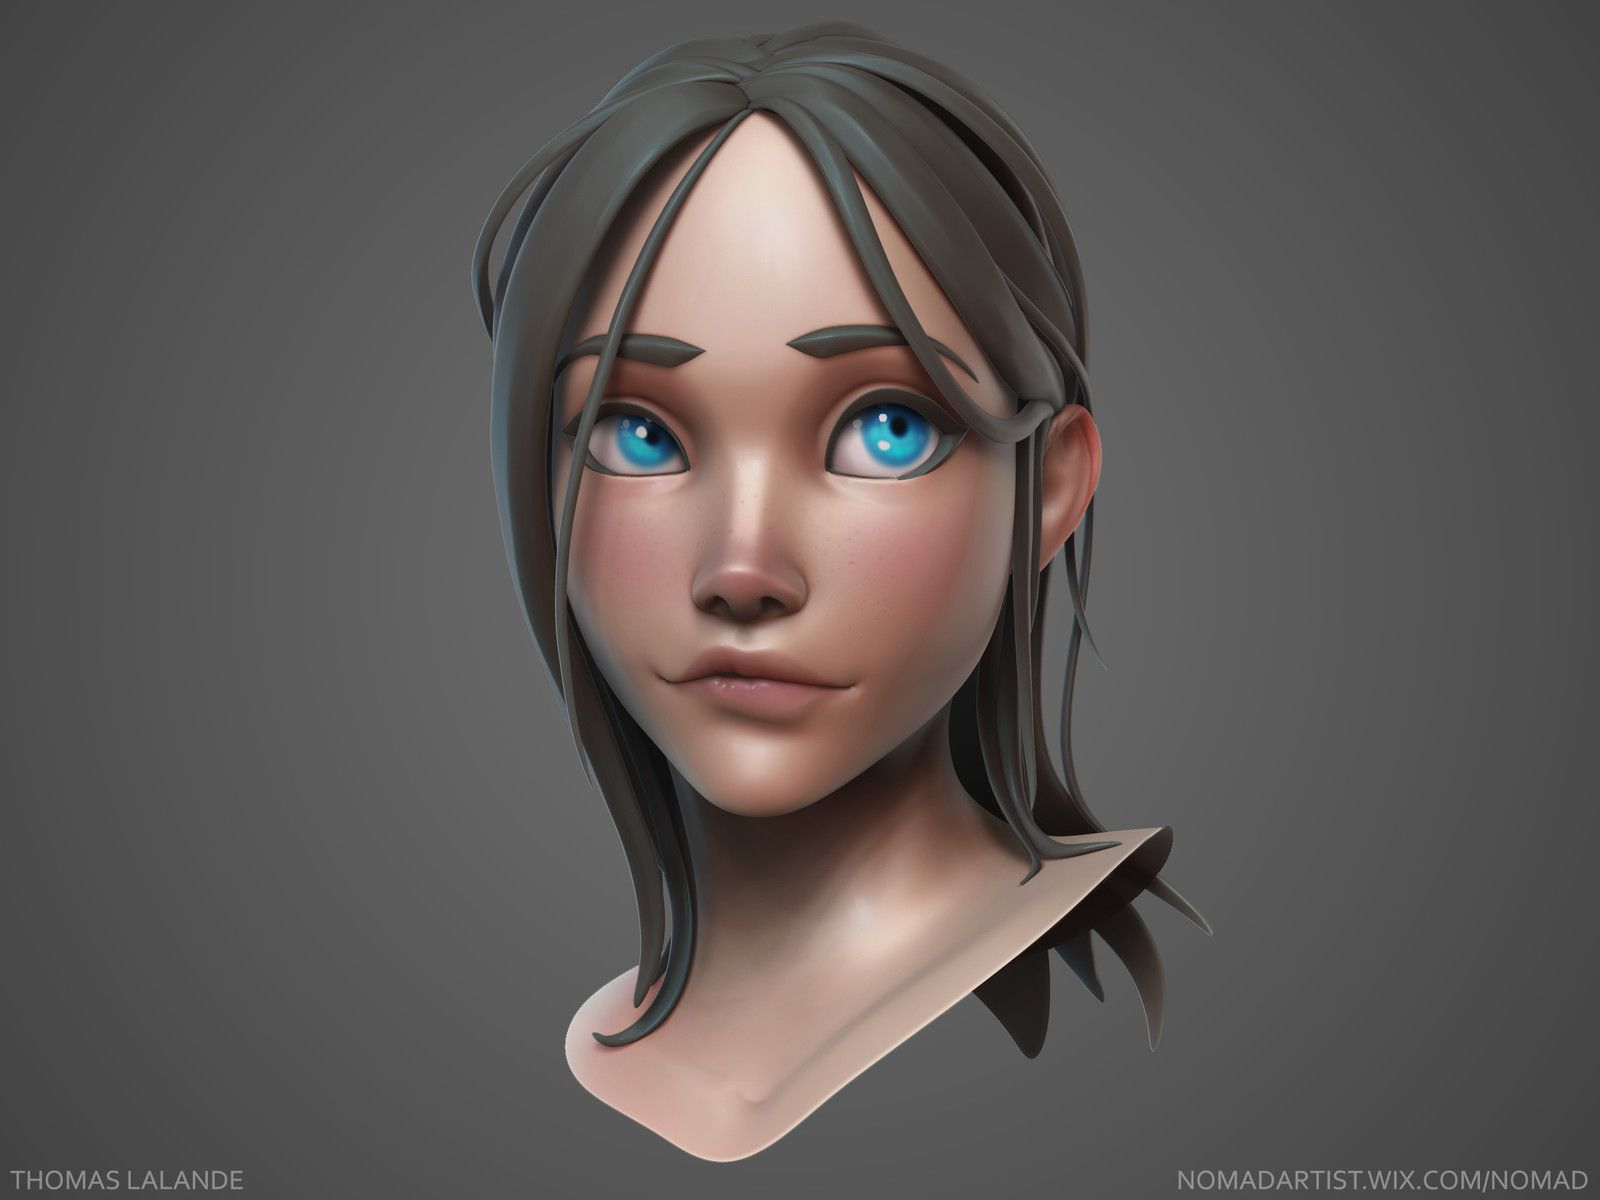 Anime Characters Zbrush : Girl sculpt thomas lalande on artstation at https